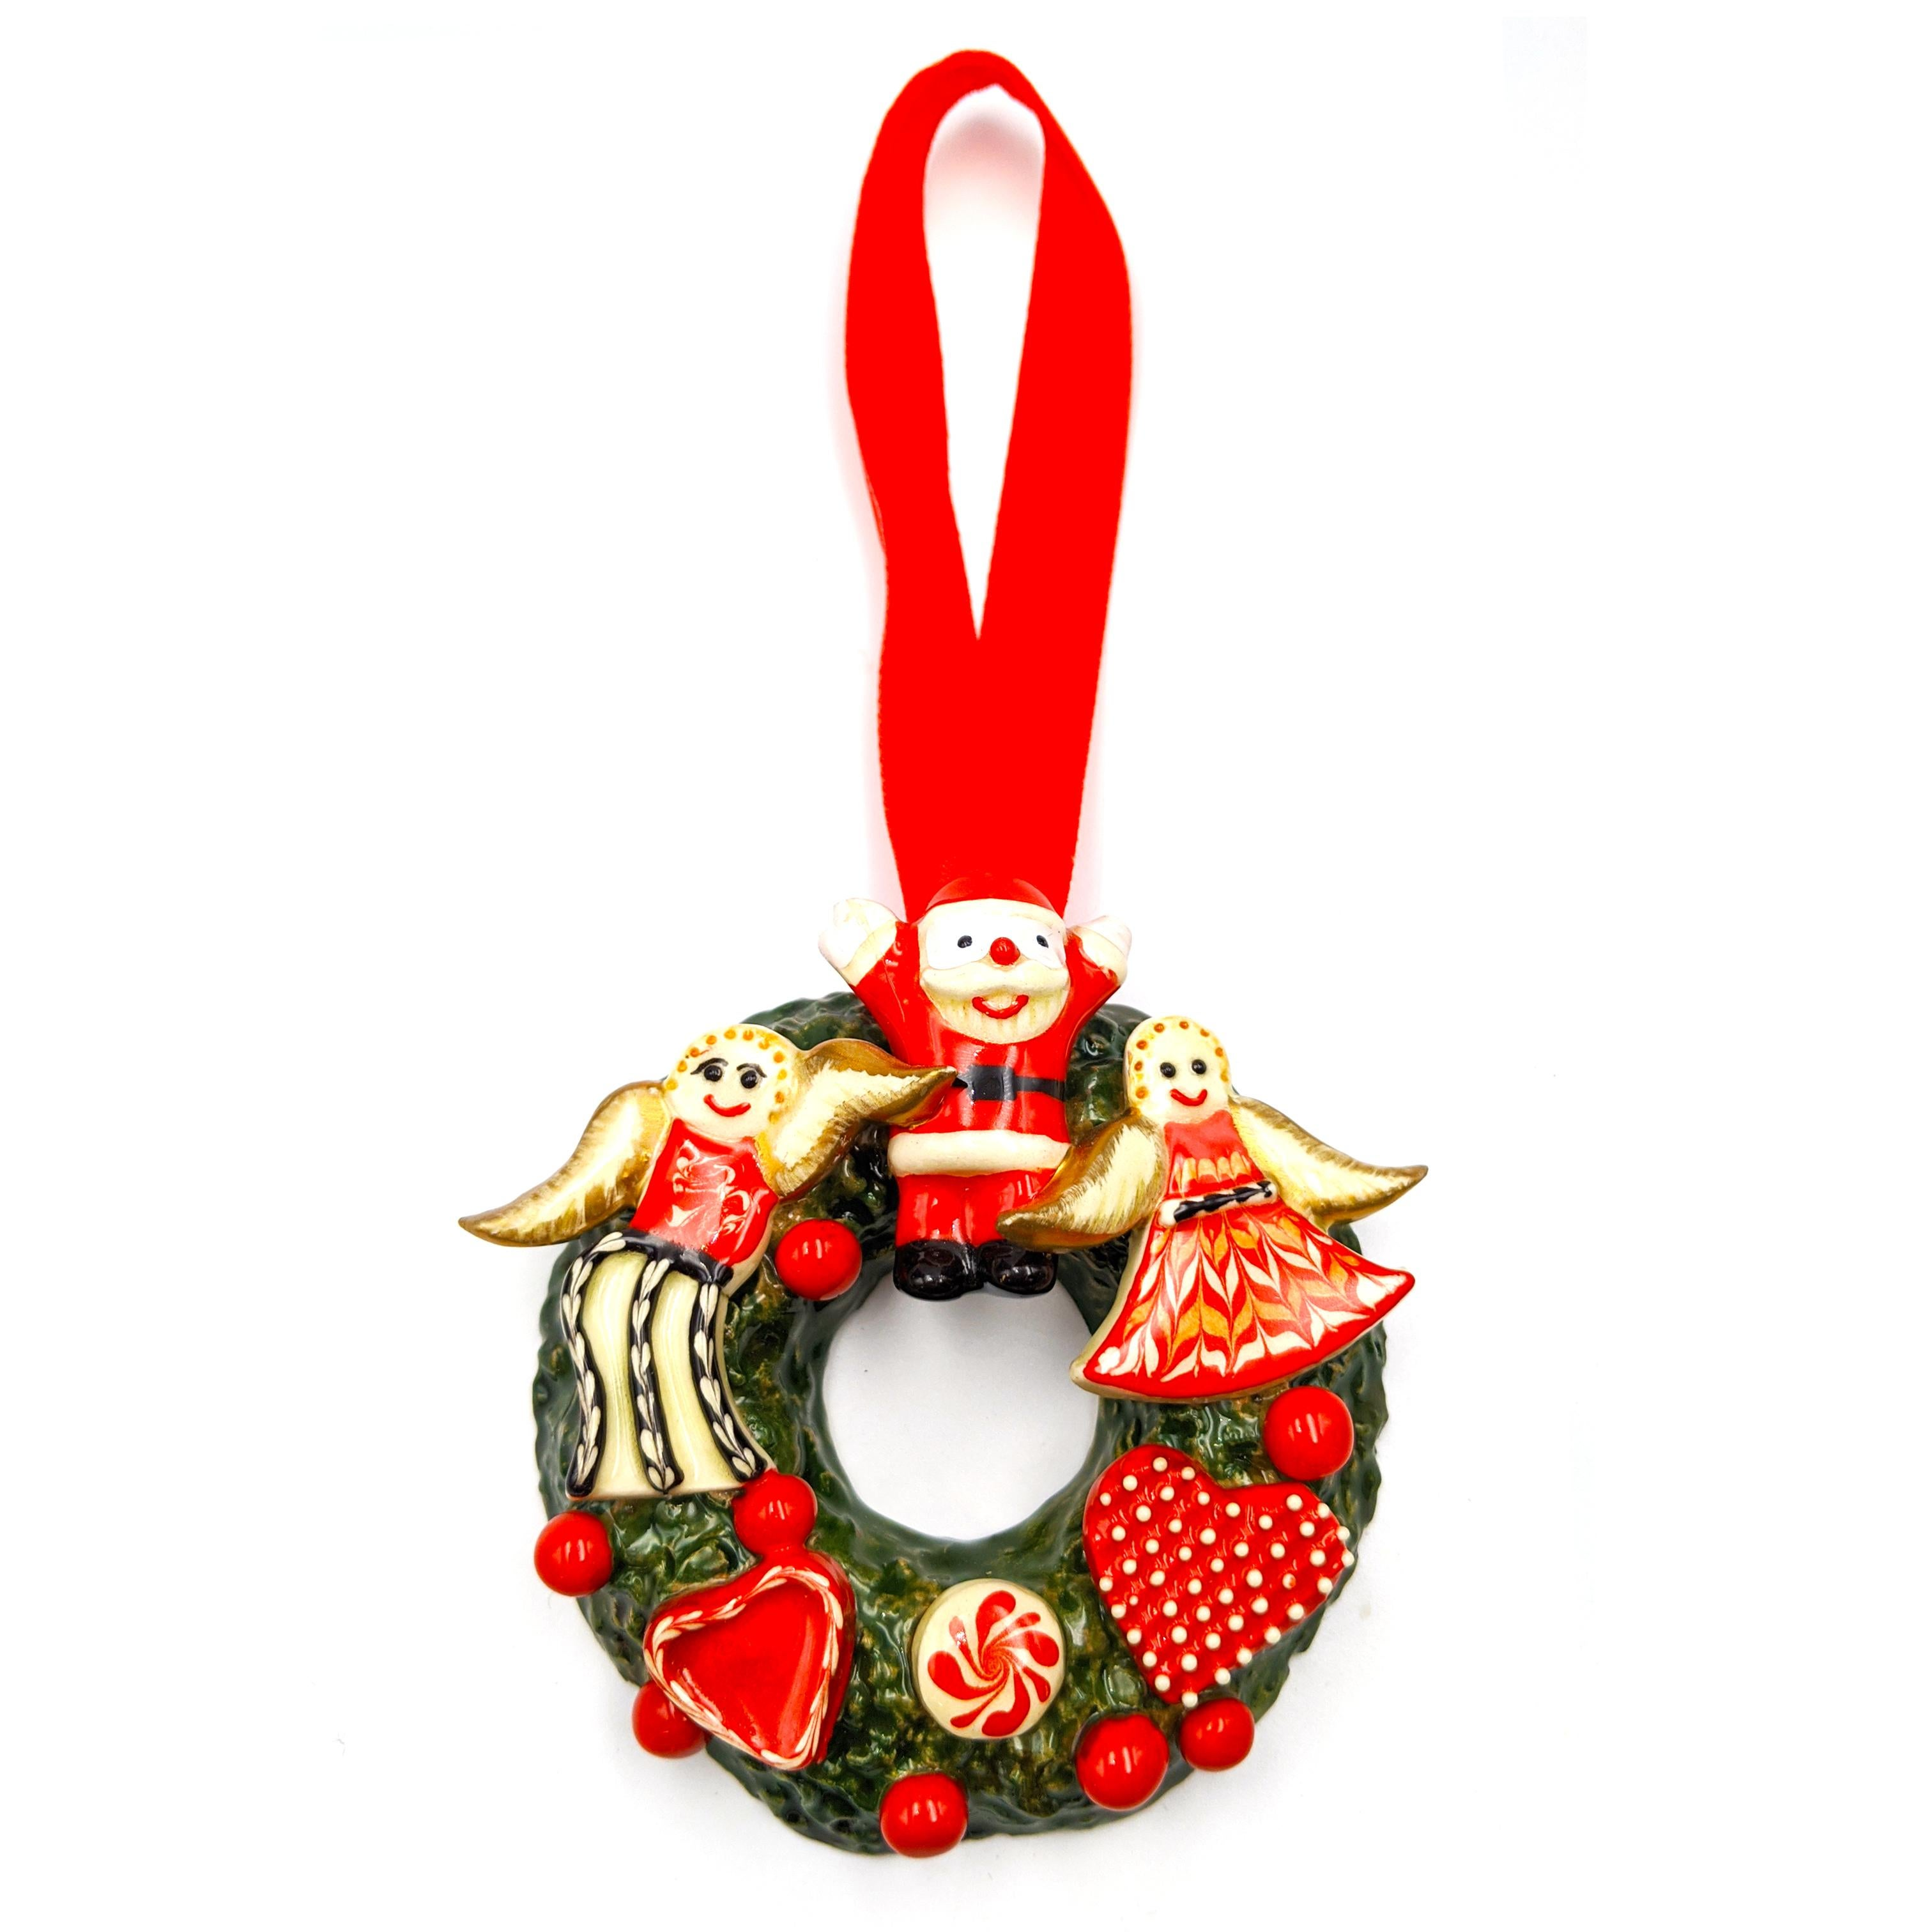 Christmas Wreath with Angels, Hearts and Peppermint Candy